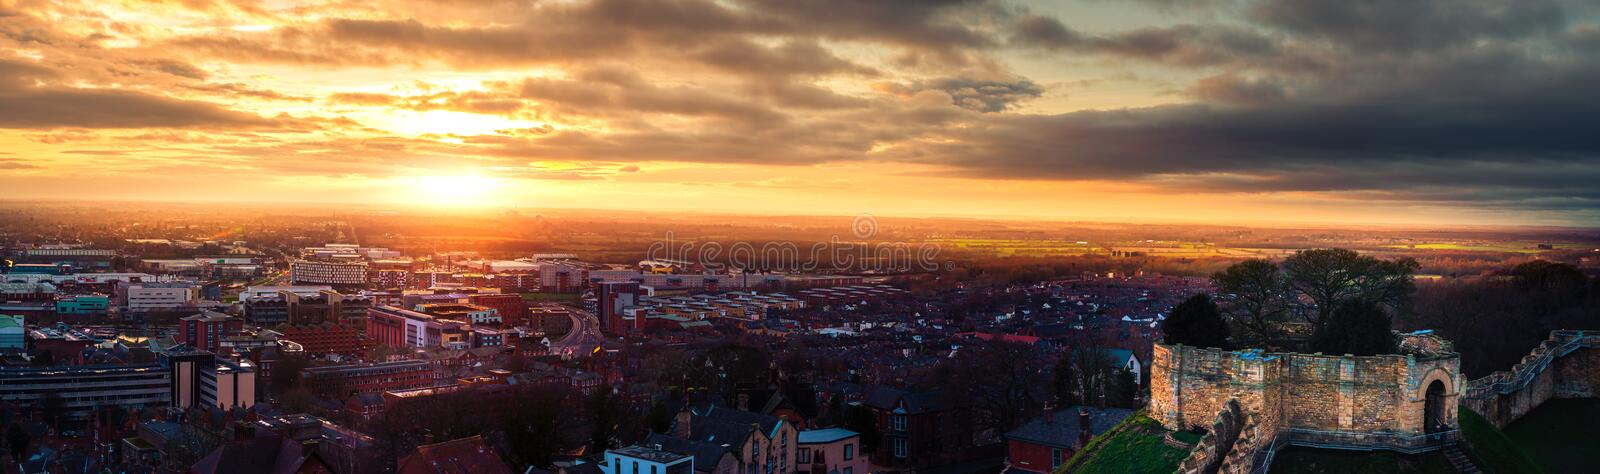 A wide panaromic shot of an epic sunset over Lincoln from the castle walls during the end of the year royalty free stock photos